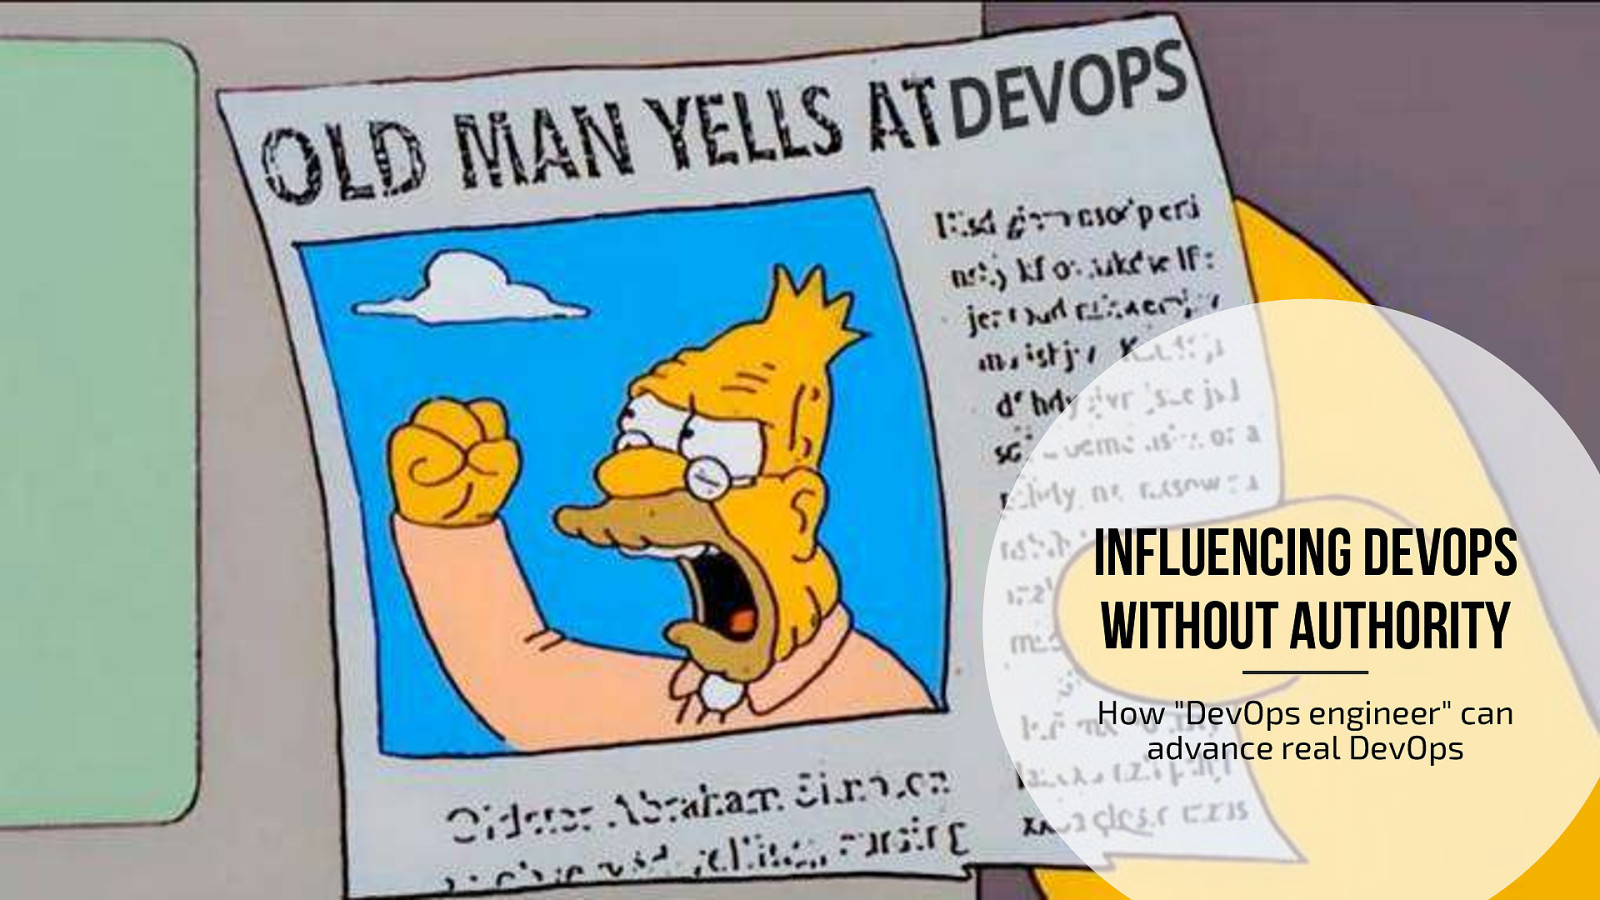 """Influencing DevOps without Authority - how """"DevOps engineer"""" can advance real DevOps"""